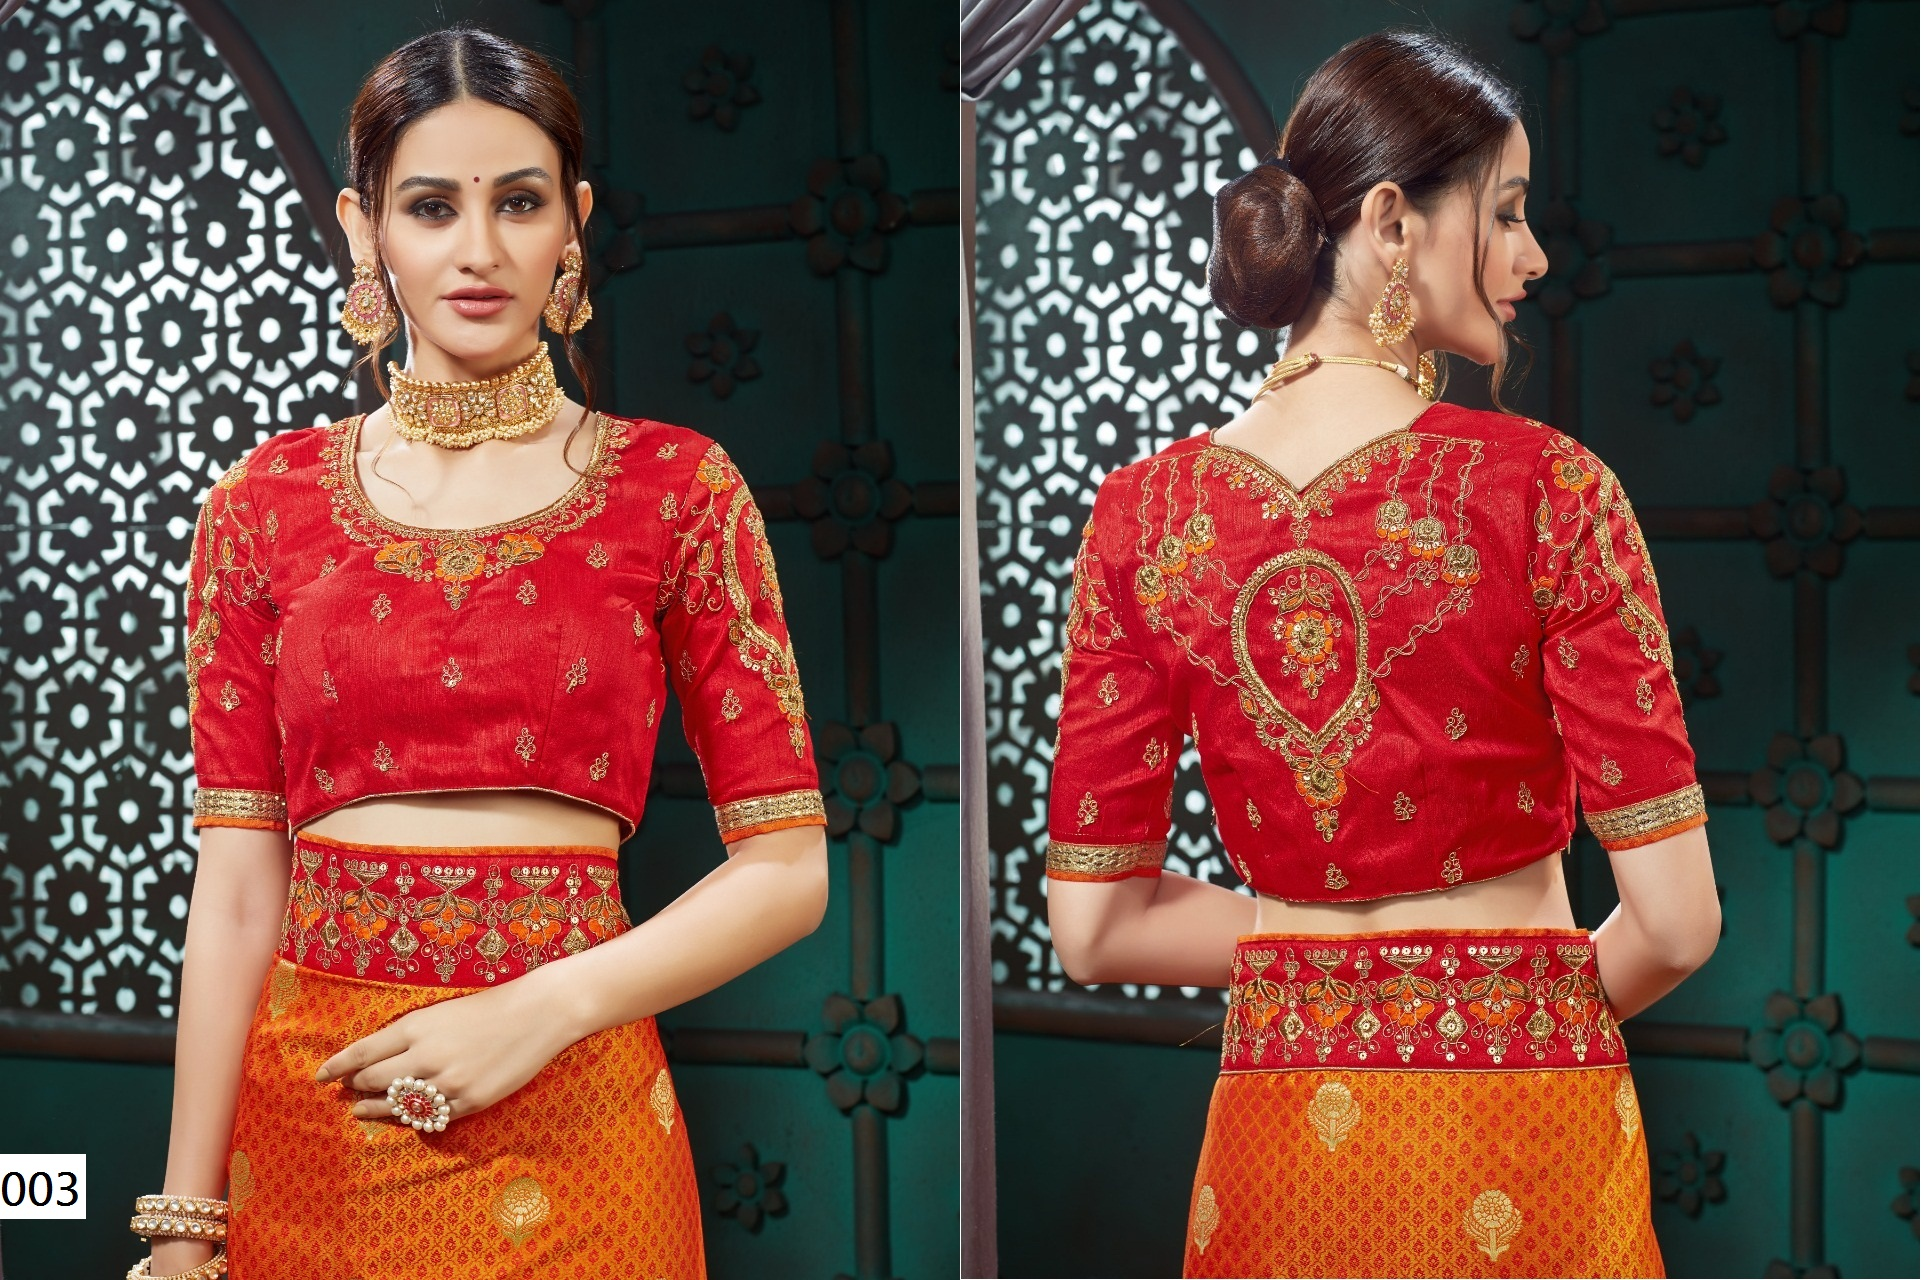 Cotton Slub Blouse With Embroidery And Lace Border